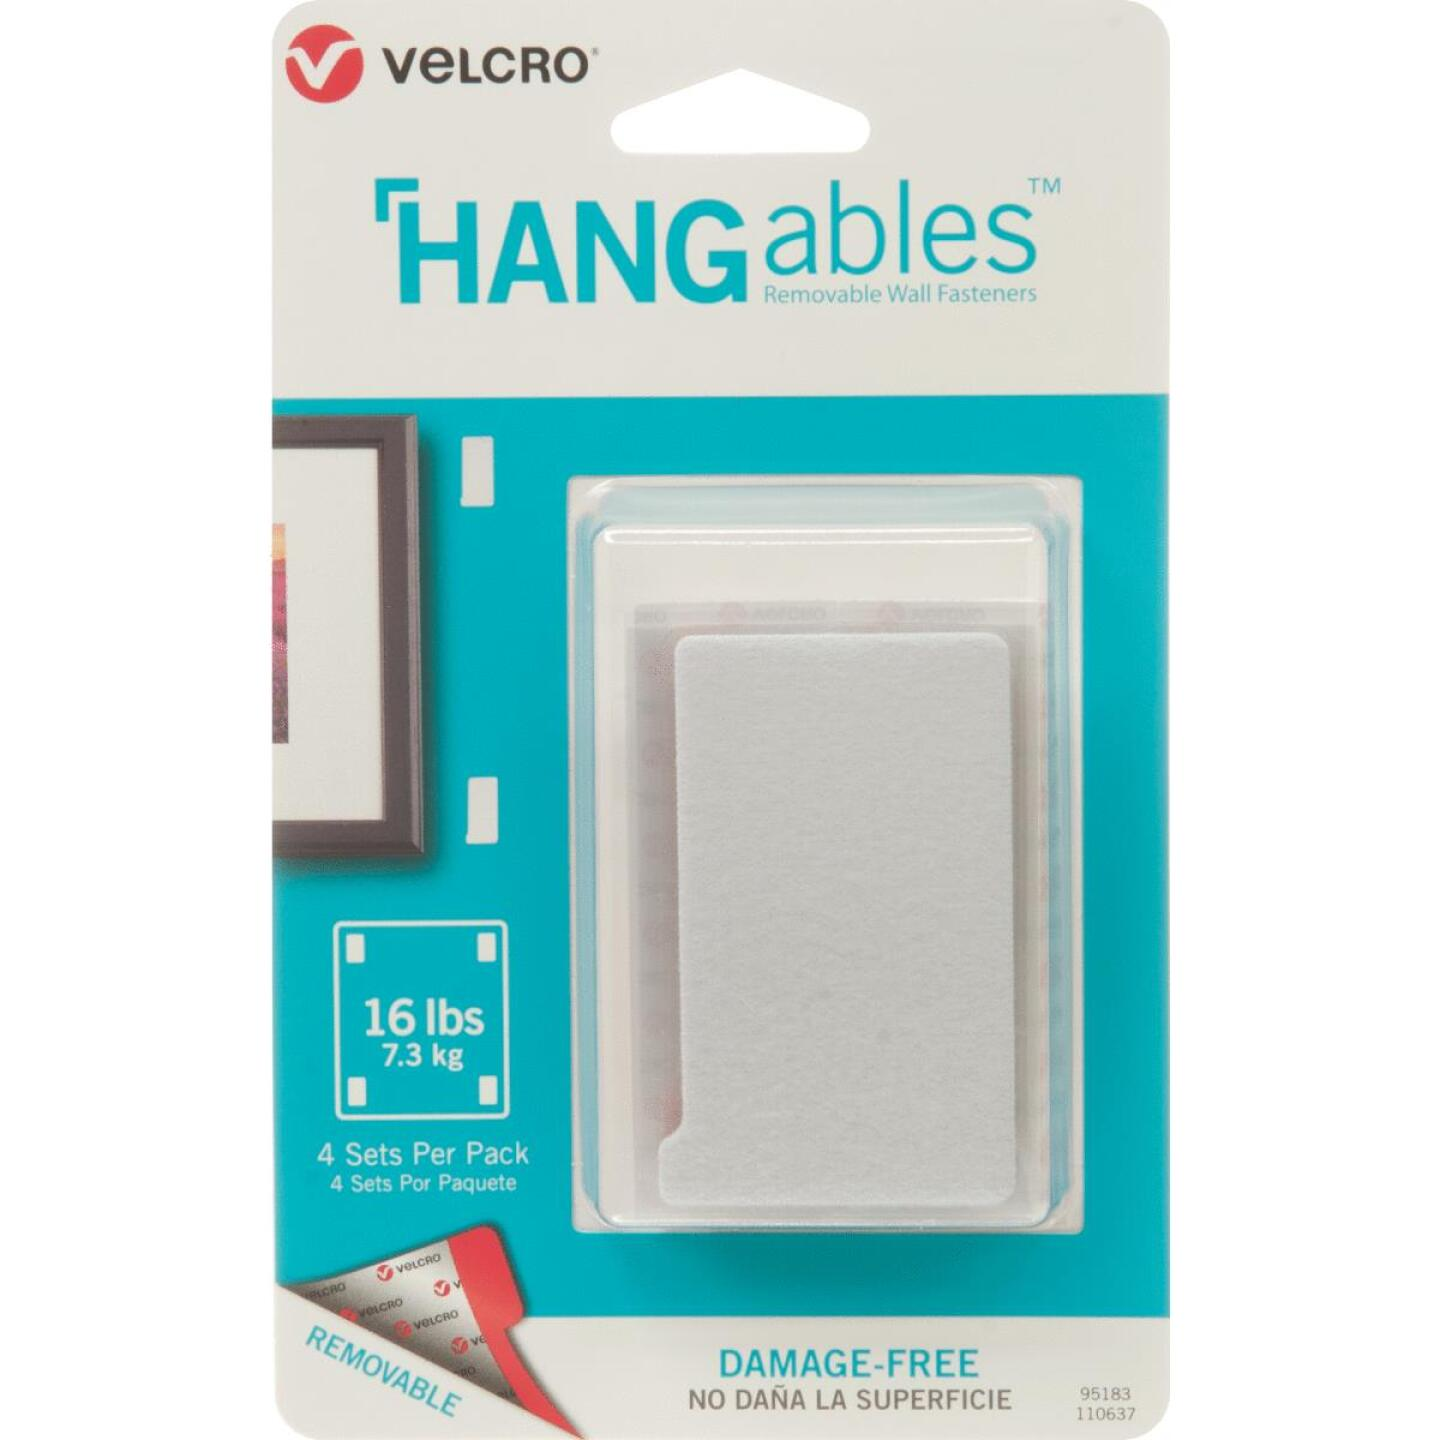 VELCRO Brand Hangables 3 In. x 1-3/4 In. White Removable Wall Fastener Strips (4 Ct.) Image 1